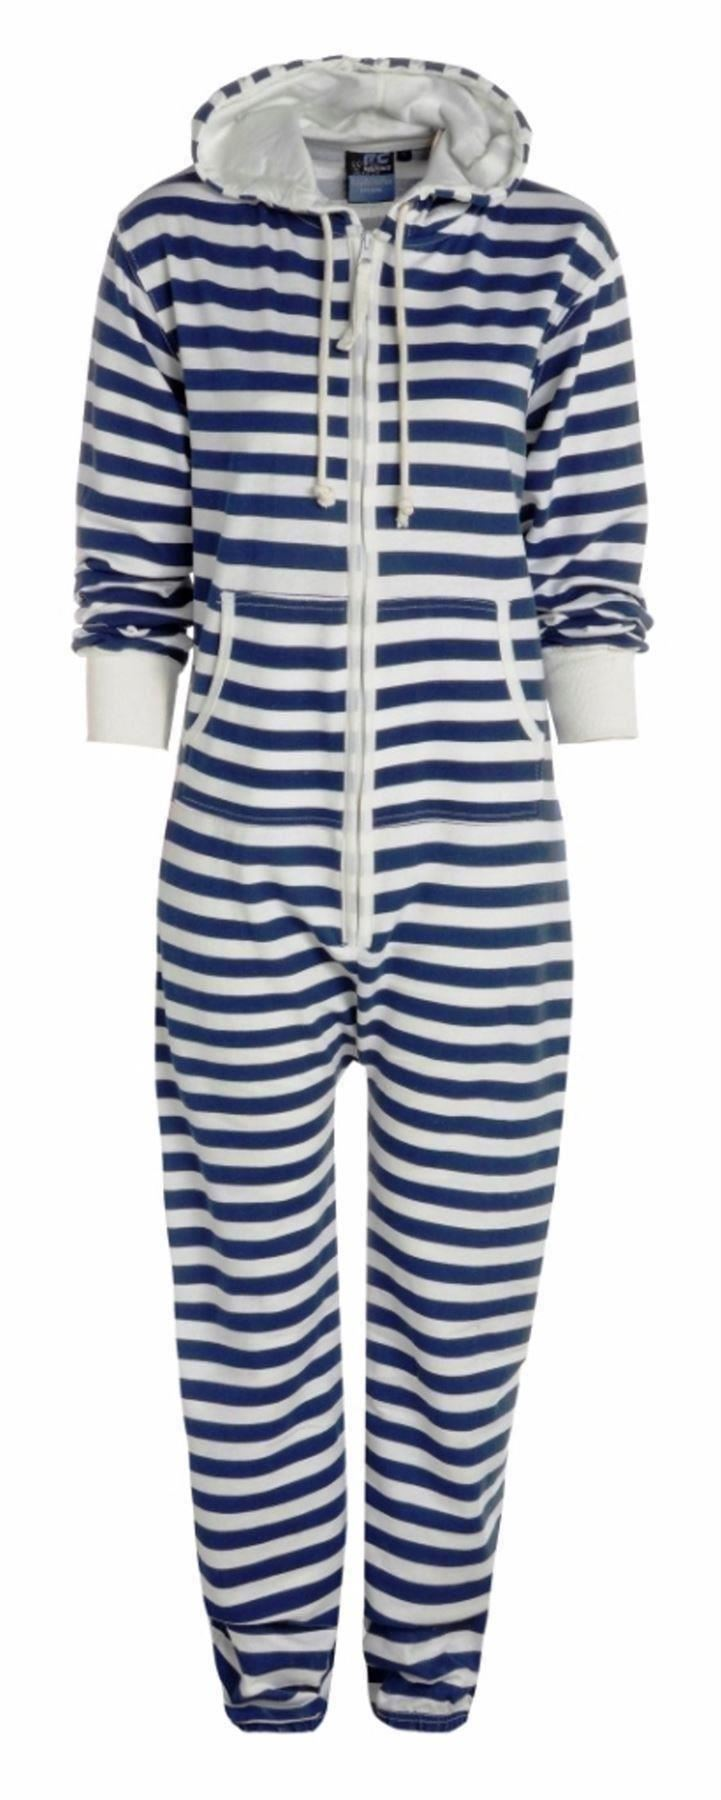 herren damen einteiler onesie overall schlafanzug mit kapuze ebay. Black Bedroom Furniture Sets. Home Design Ideas